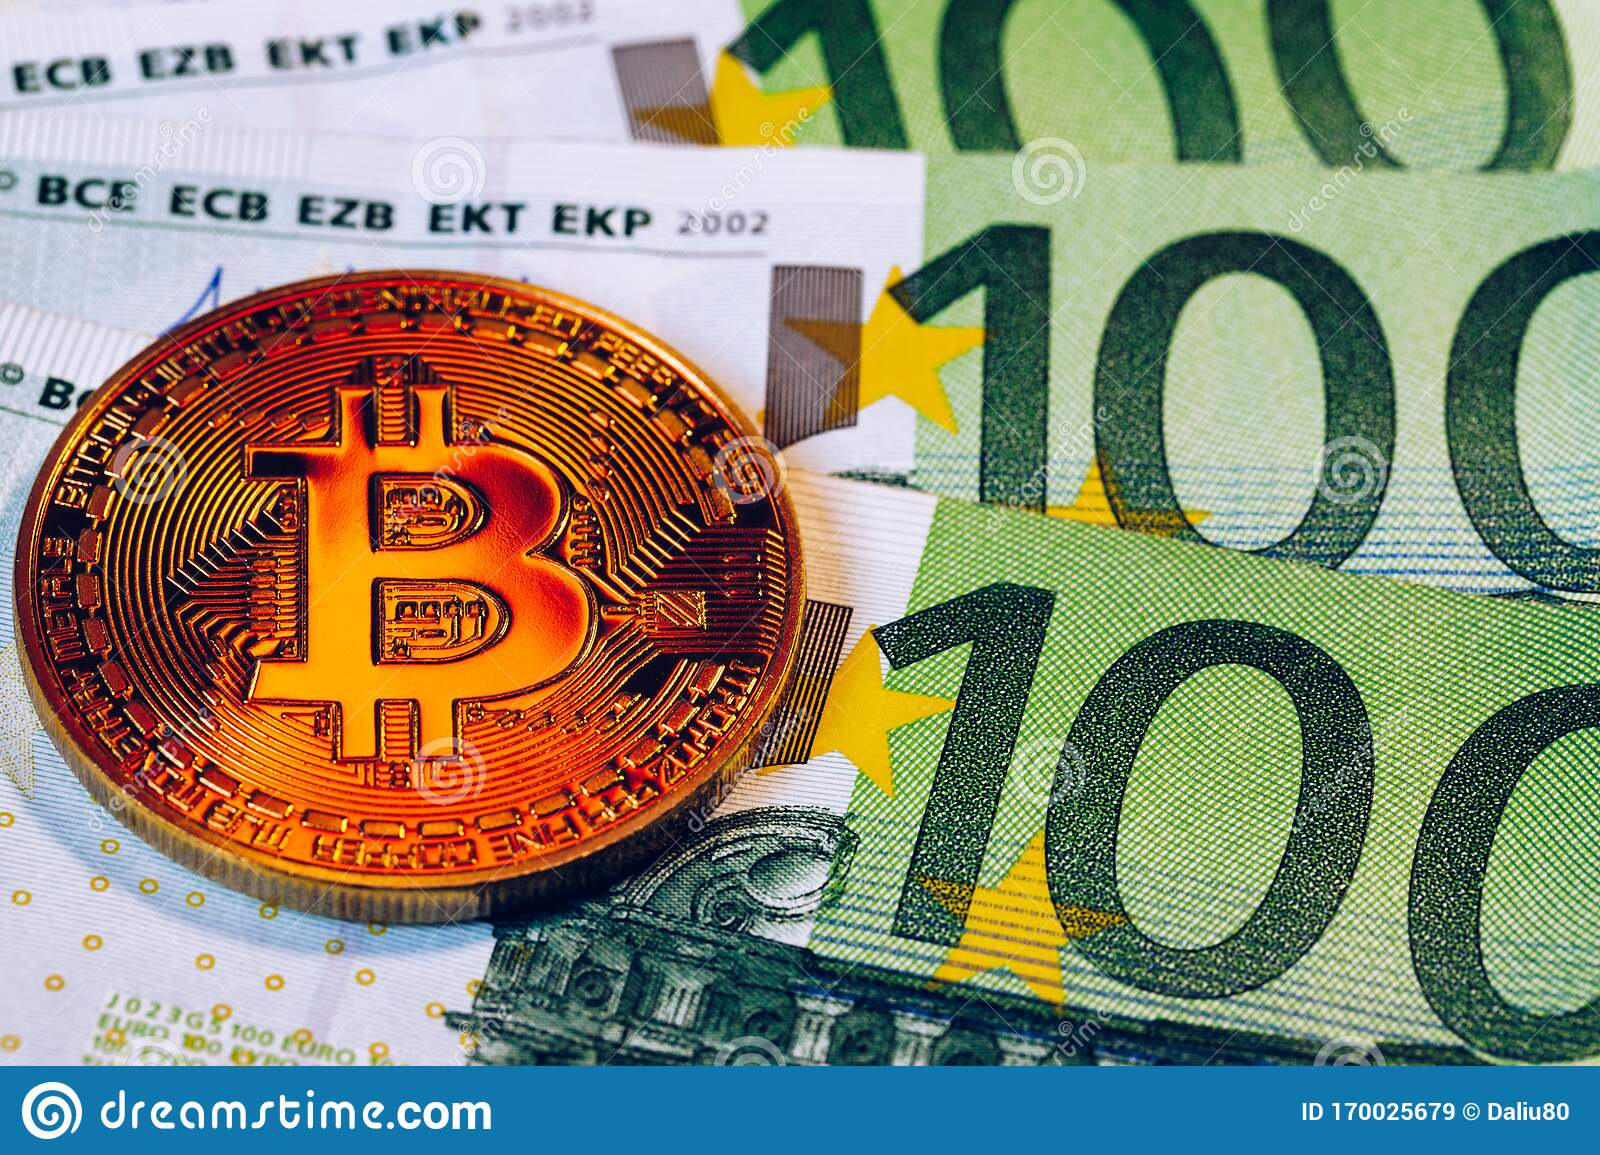 100 euros to bitcoins for free bet showes that come on tuesday